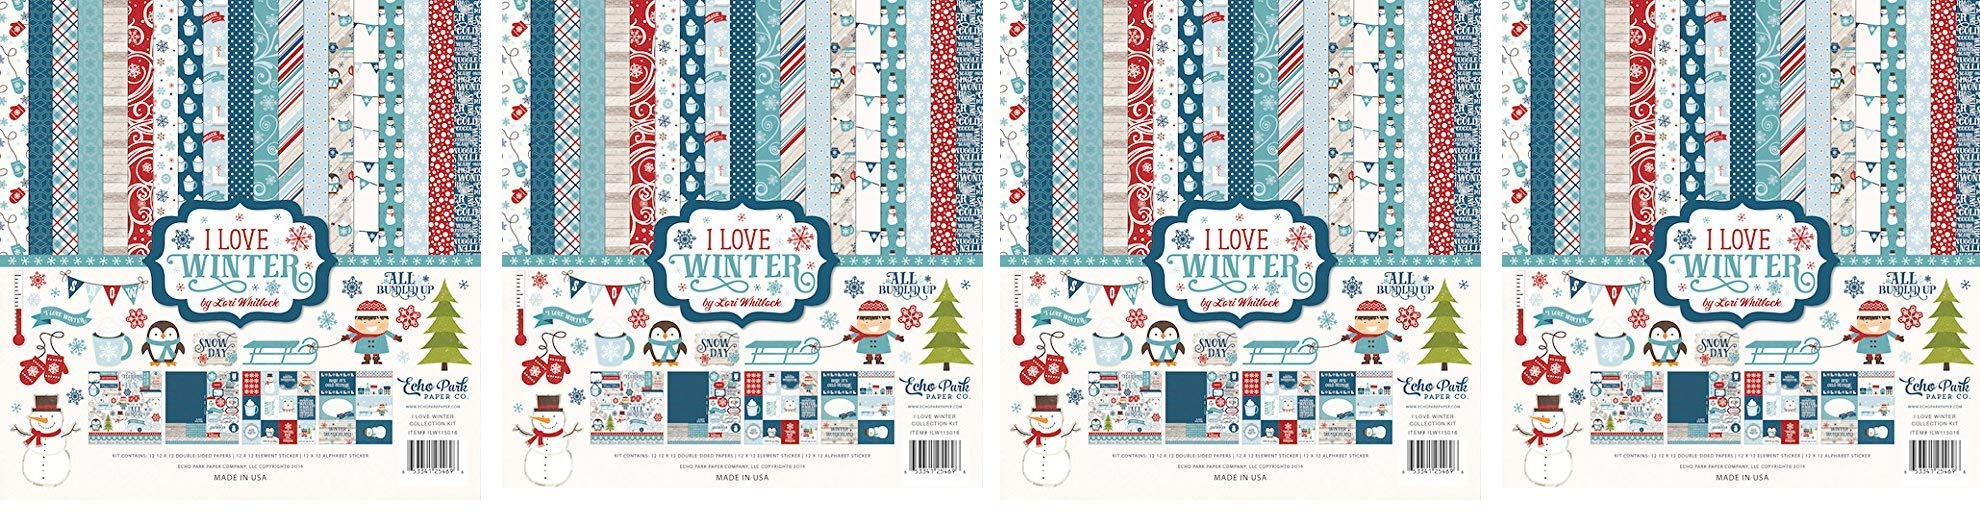 Echo Park Paper Company ILW115016 I Love Winter Collection Kit (4-Pack)